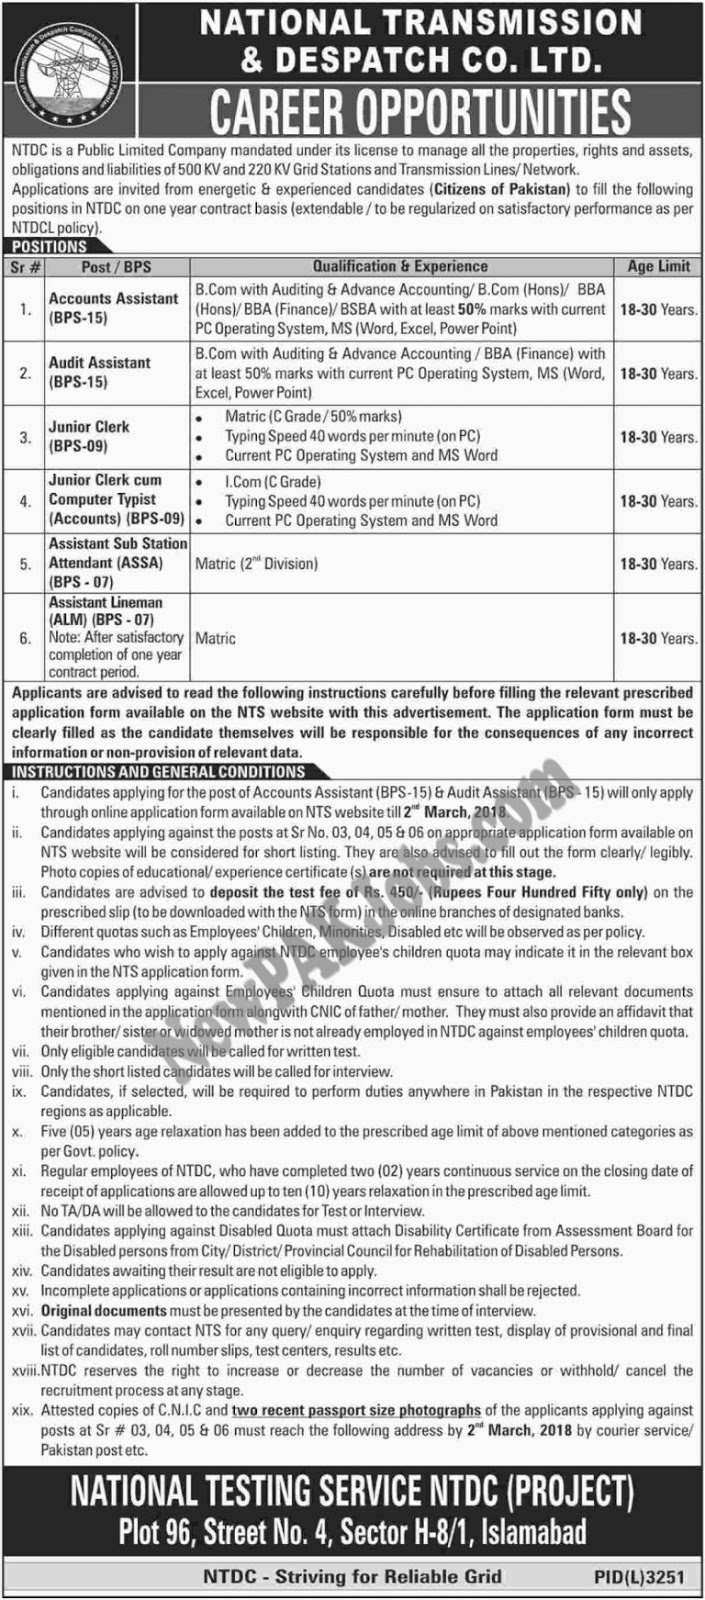 National Transmission and Dispatch Company Latest NTS Jobs 2018, Application Form